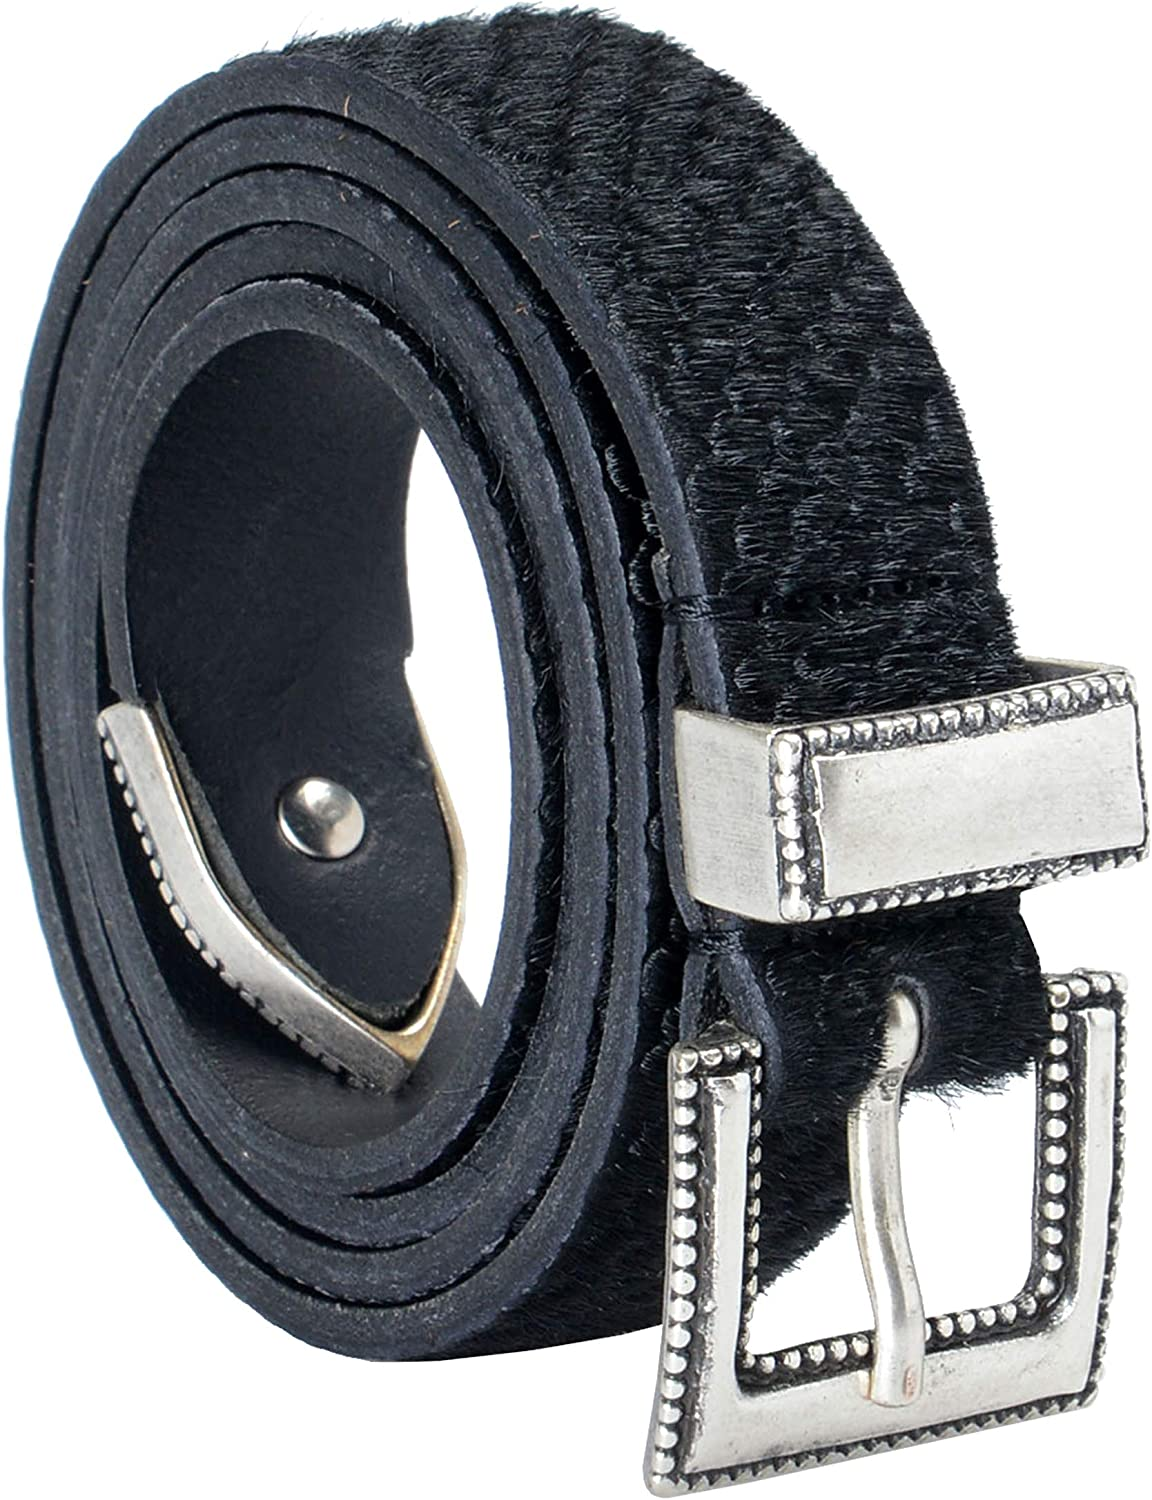 Just Cavalli 100% Leather Black Women's Belt US 30 IT 95